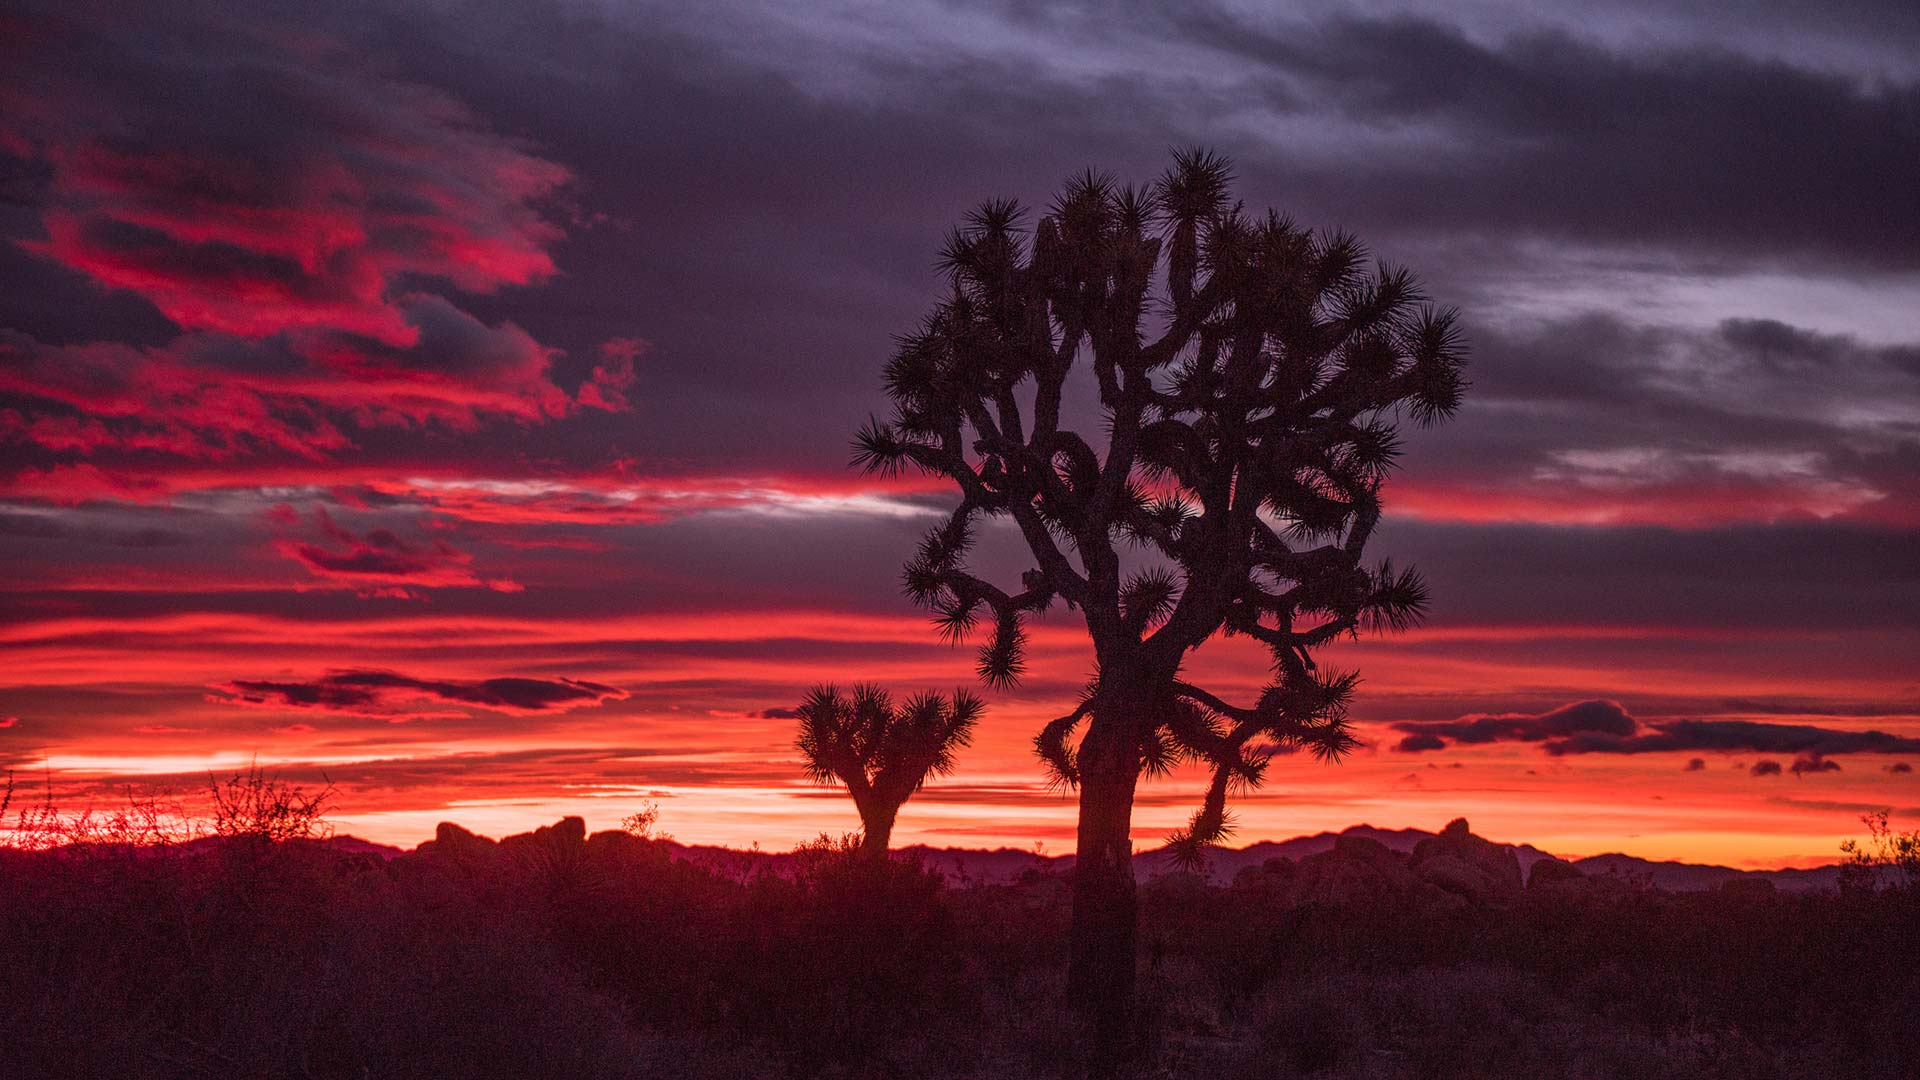 A sunset at Joshua Tree.